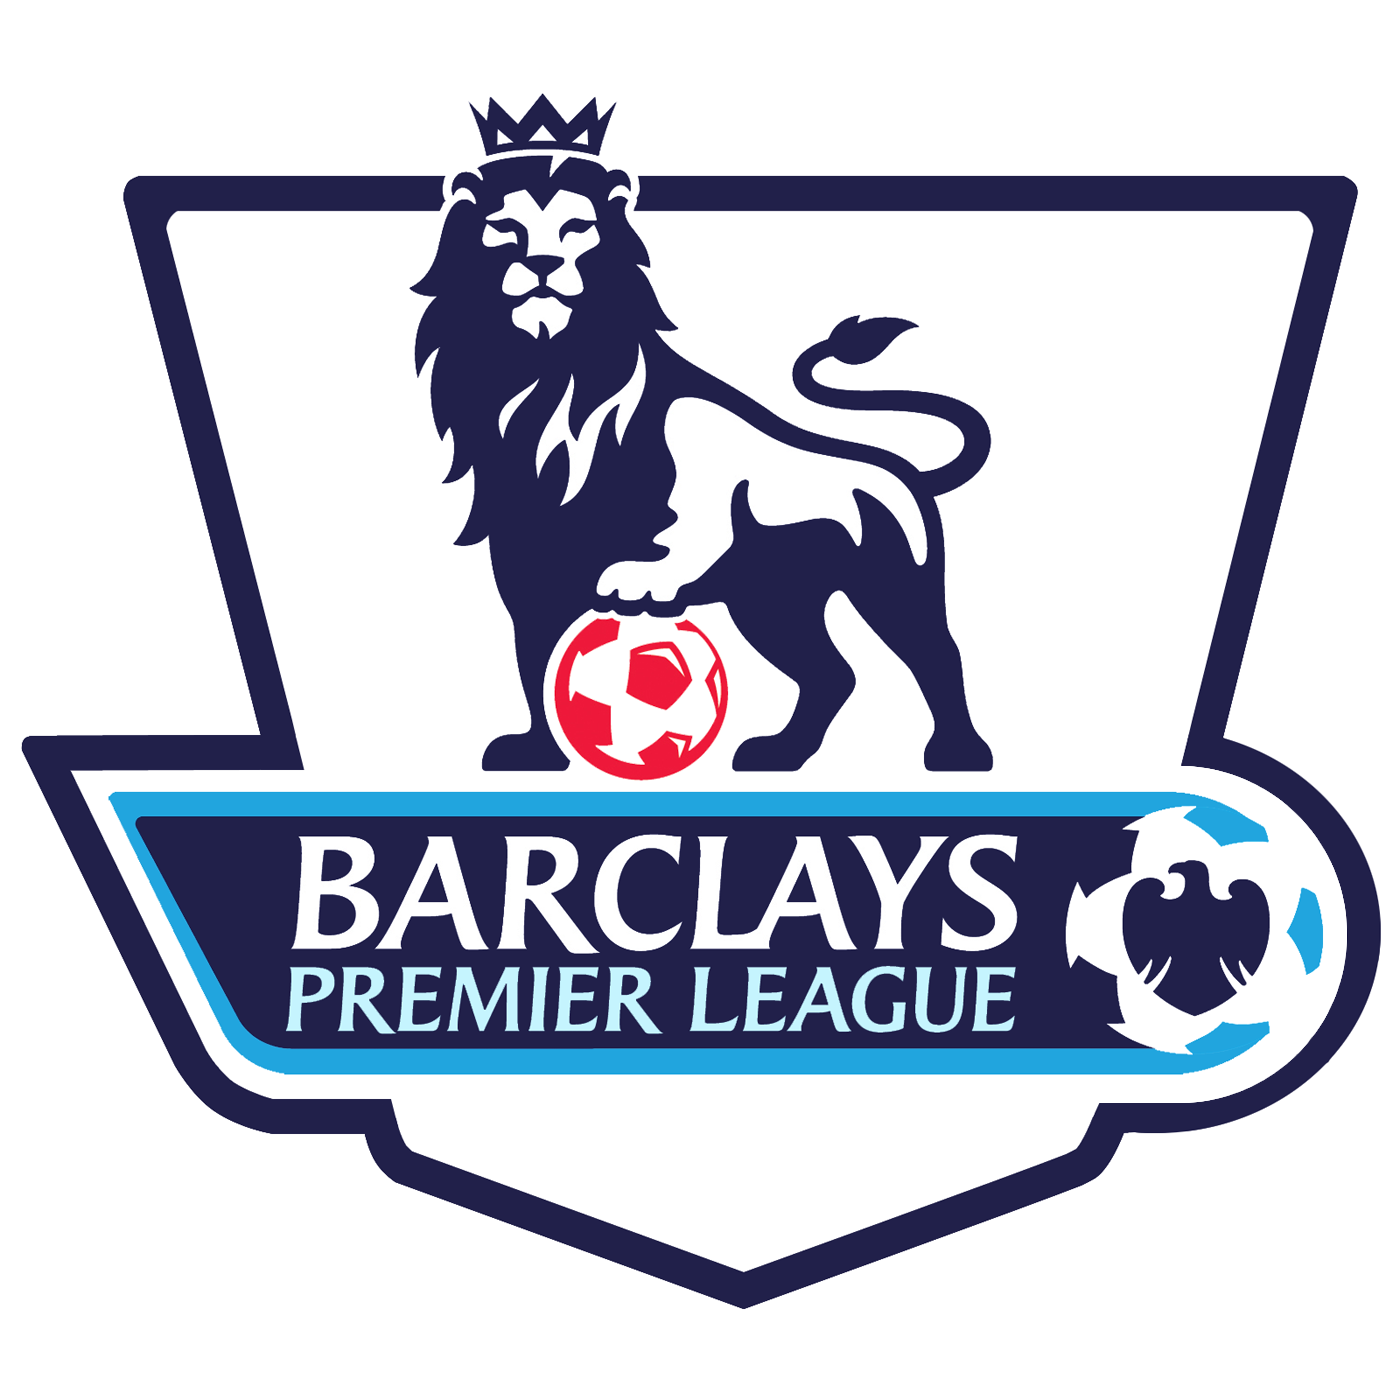 premier league barclays english season soccer football teams bein epl sports liga england premiership fantasy escudo fixtures schedule results premierleague